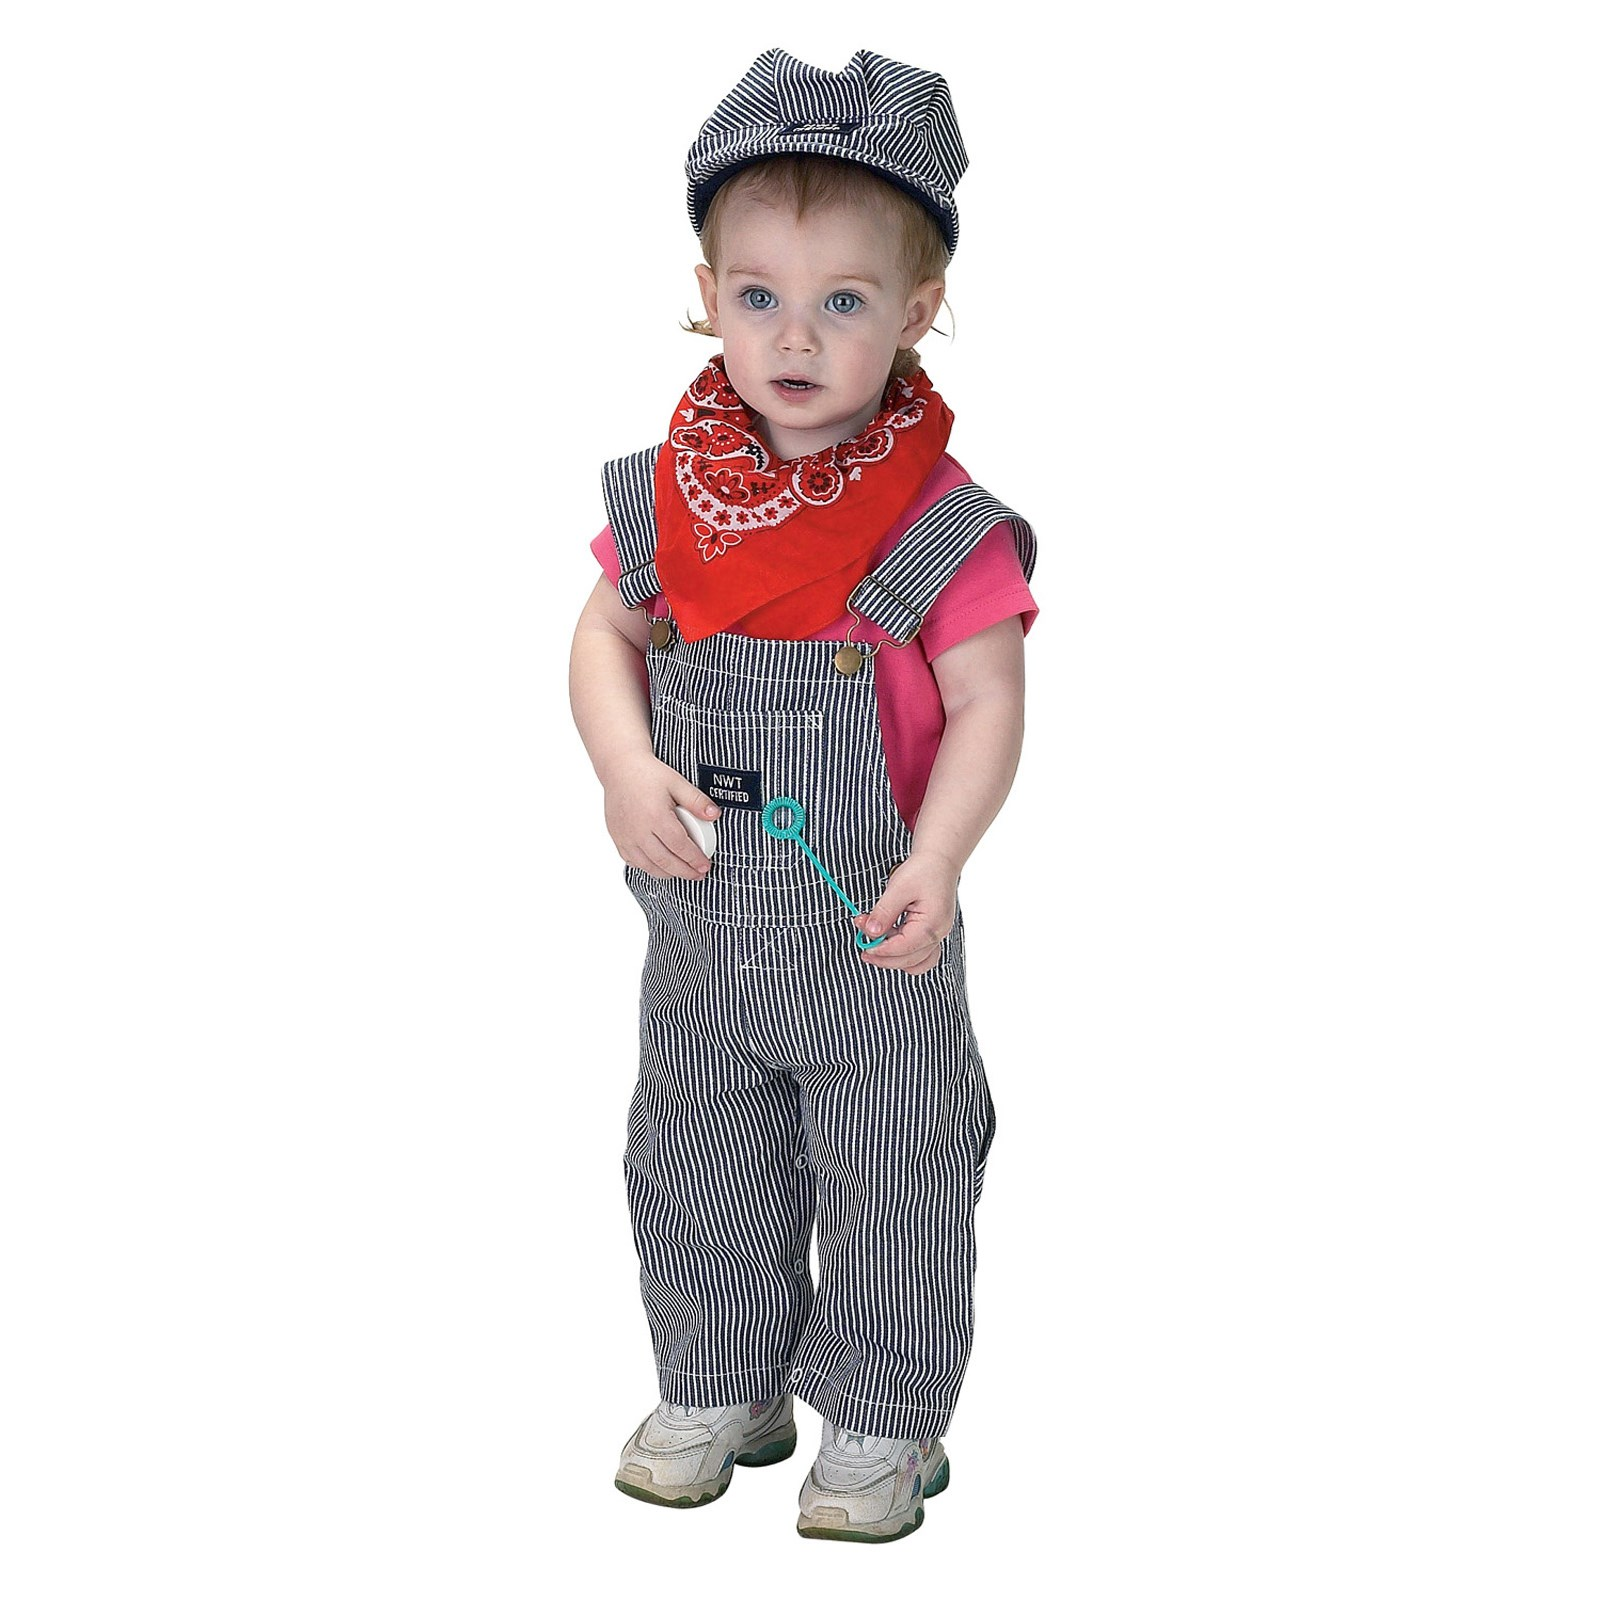 Jr. Train Engineer Suit Infant / Toddler Costume 18 Months